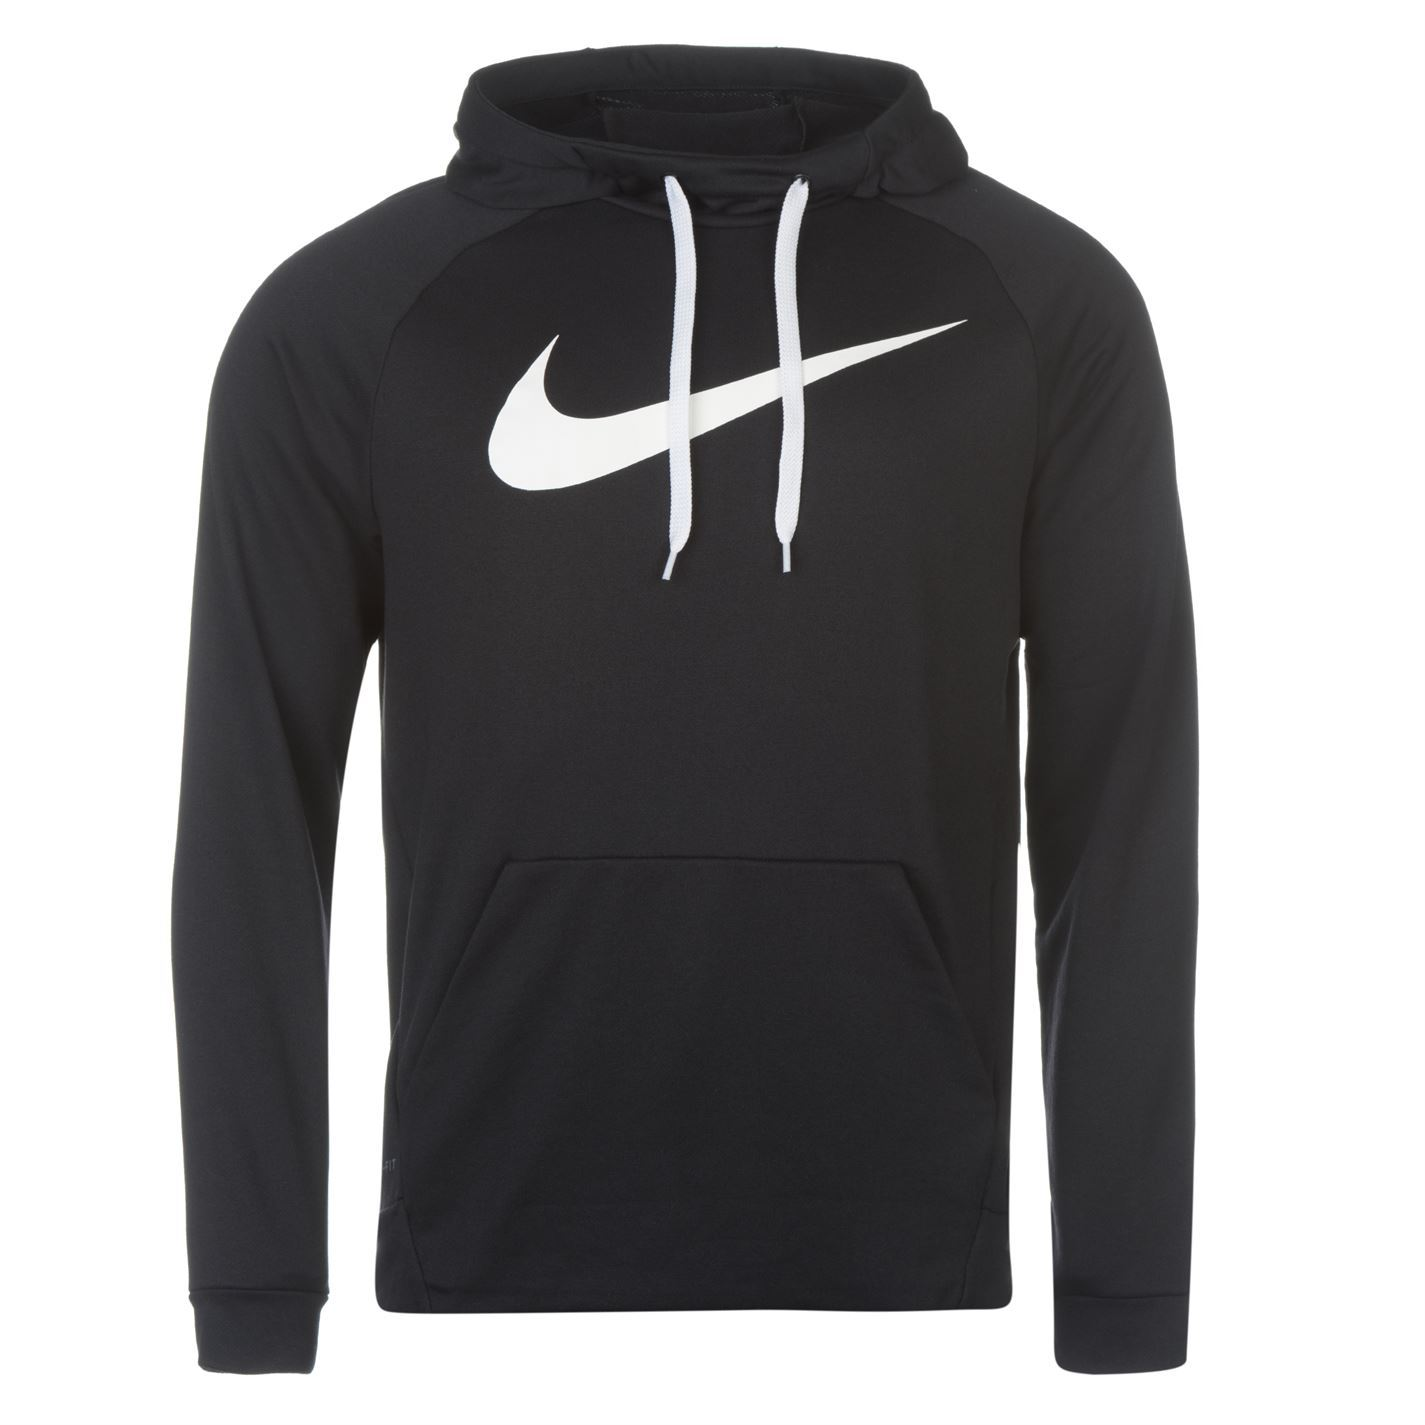 Nike-Dri-Fit-Swoosh-Pullover-Hoody-Mens-OTH-Hoodie-Sweatshirt-Sweater-Hooded-Top thumbnail 3